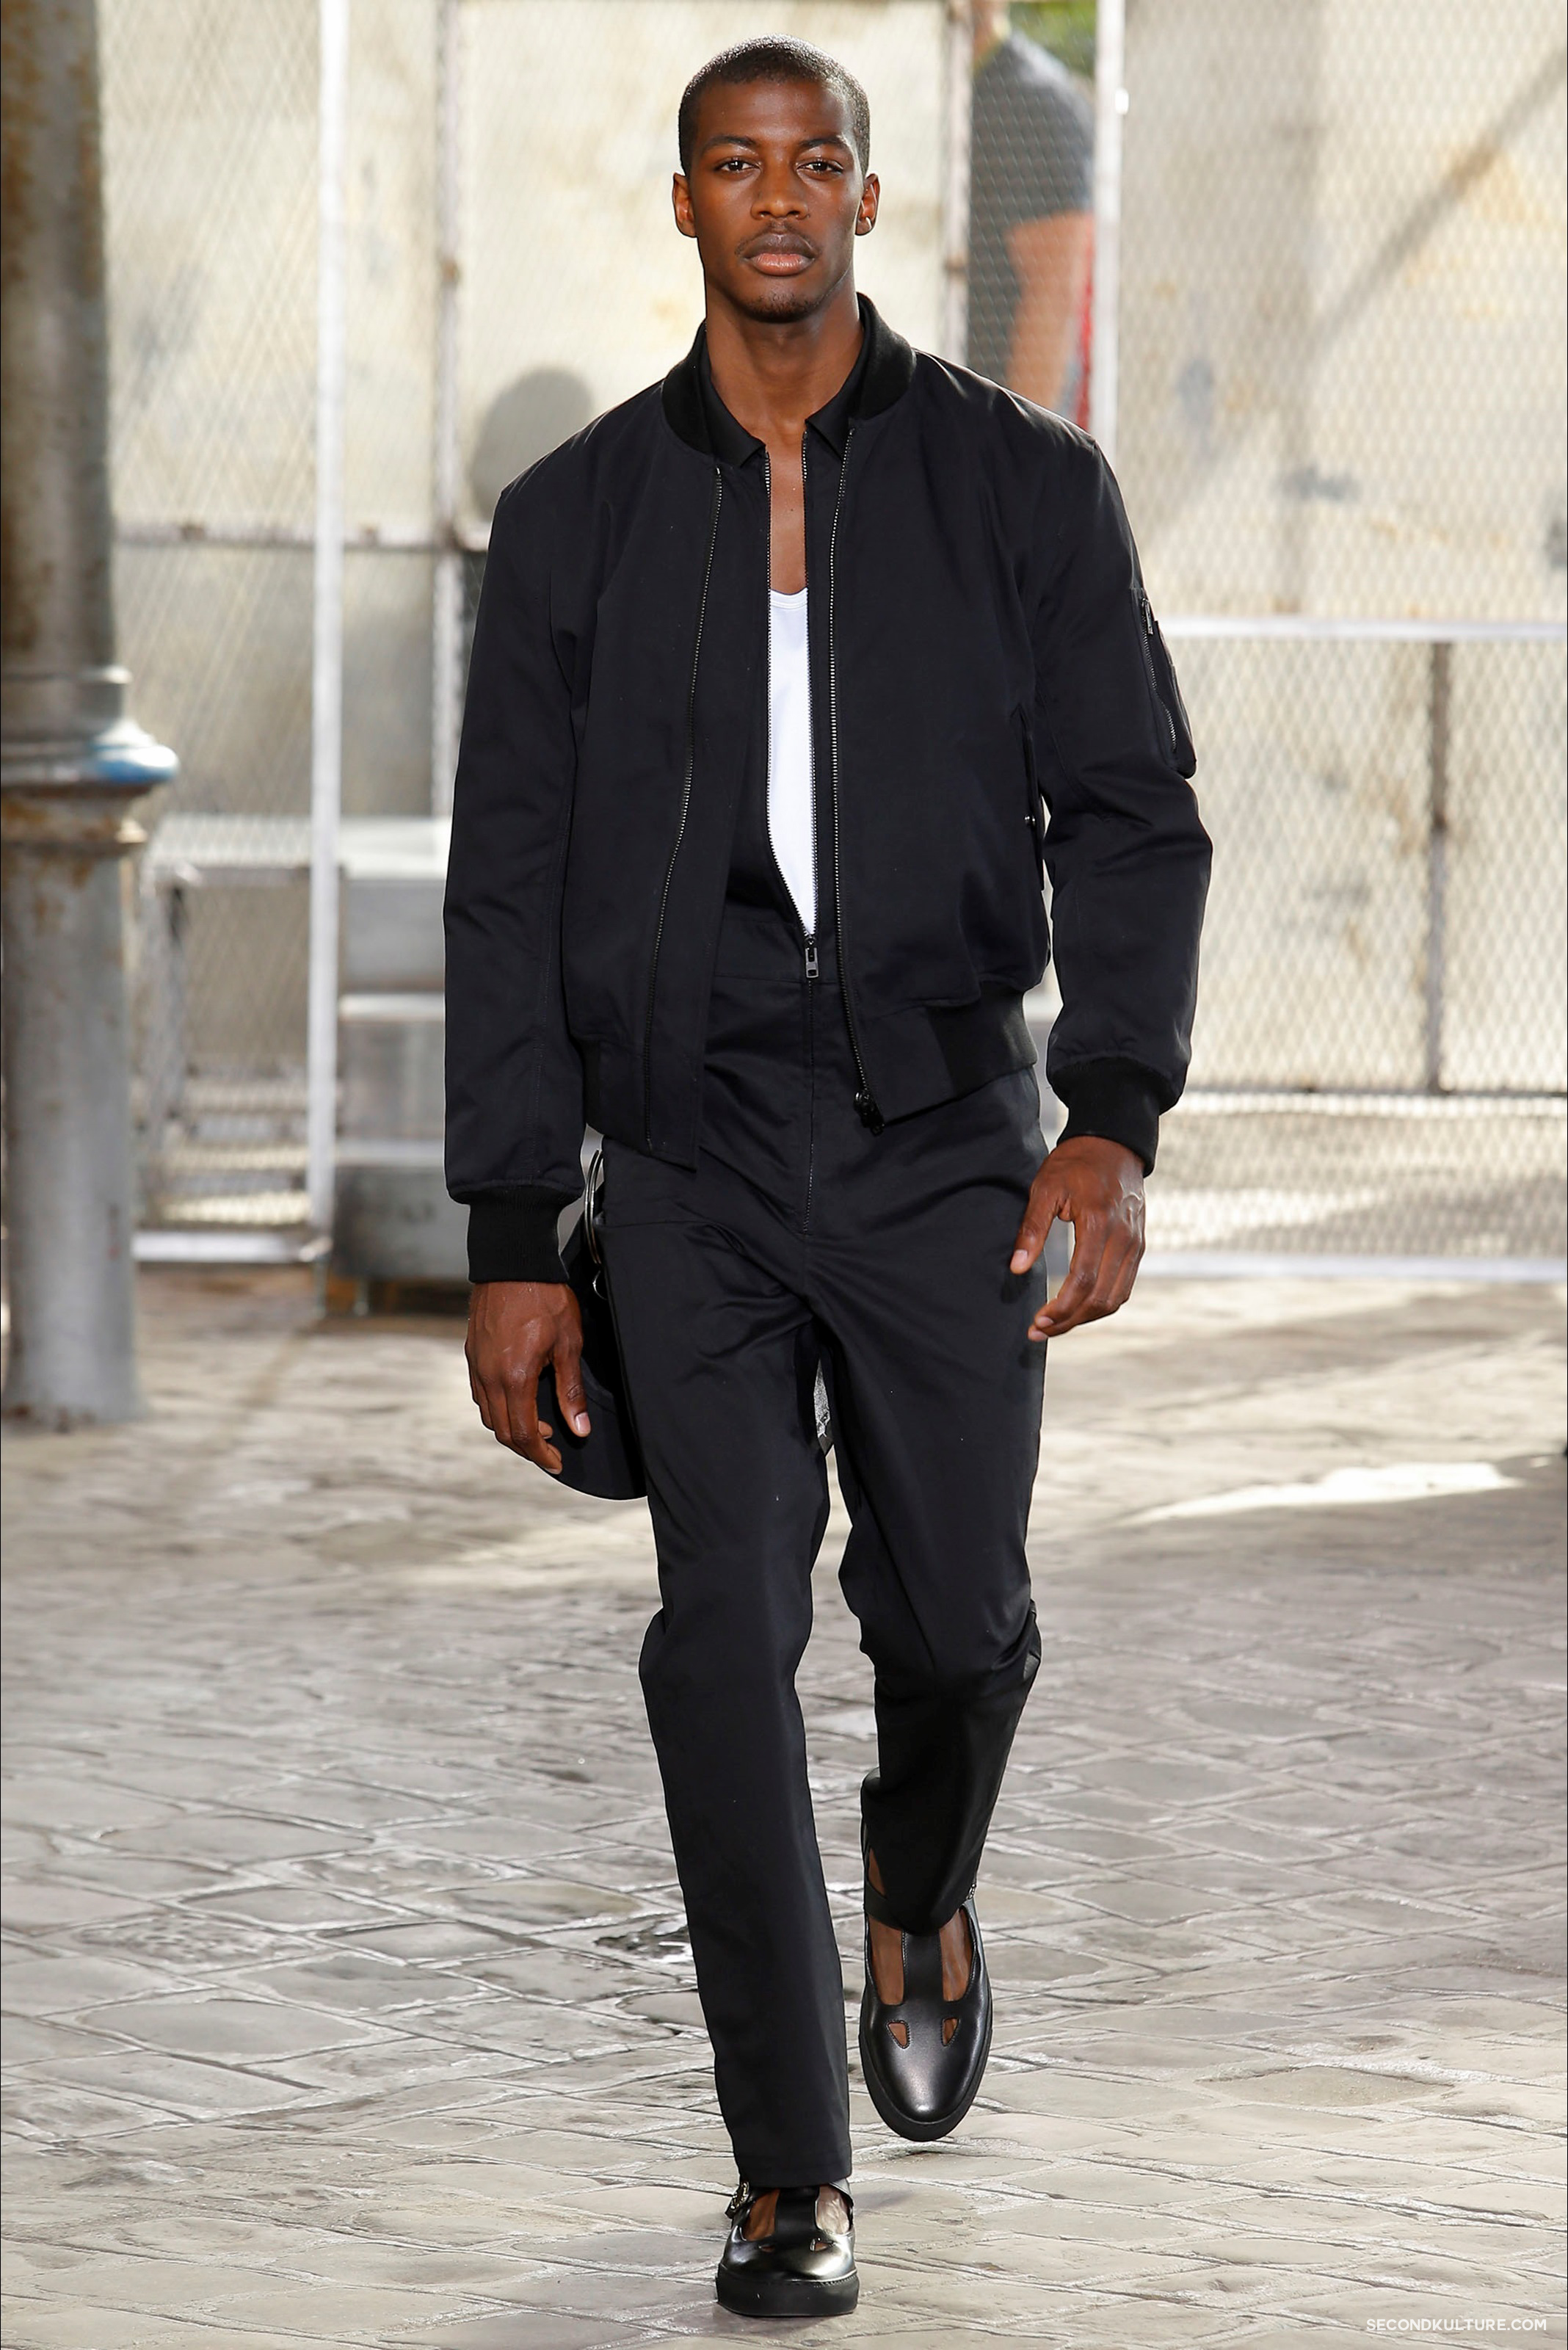 Givenchy Spring Summer 2016 Menswear Jesus Religion Chain Runway Show Look 4